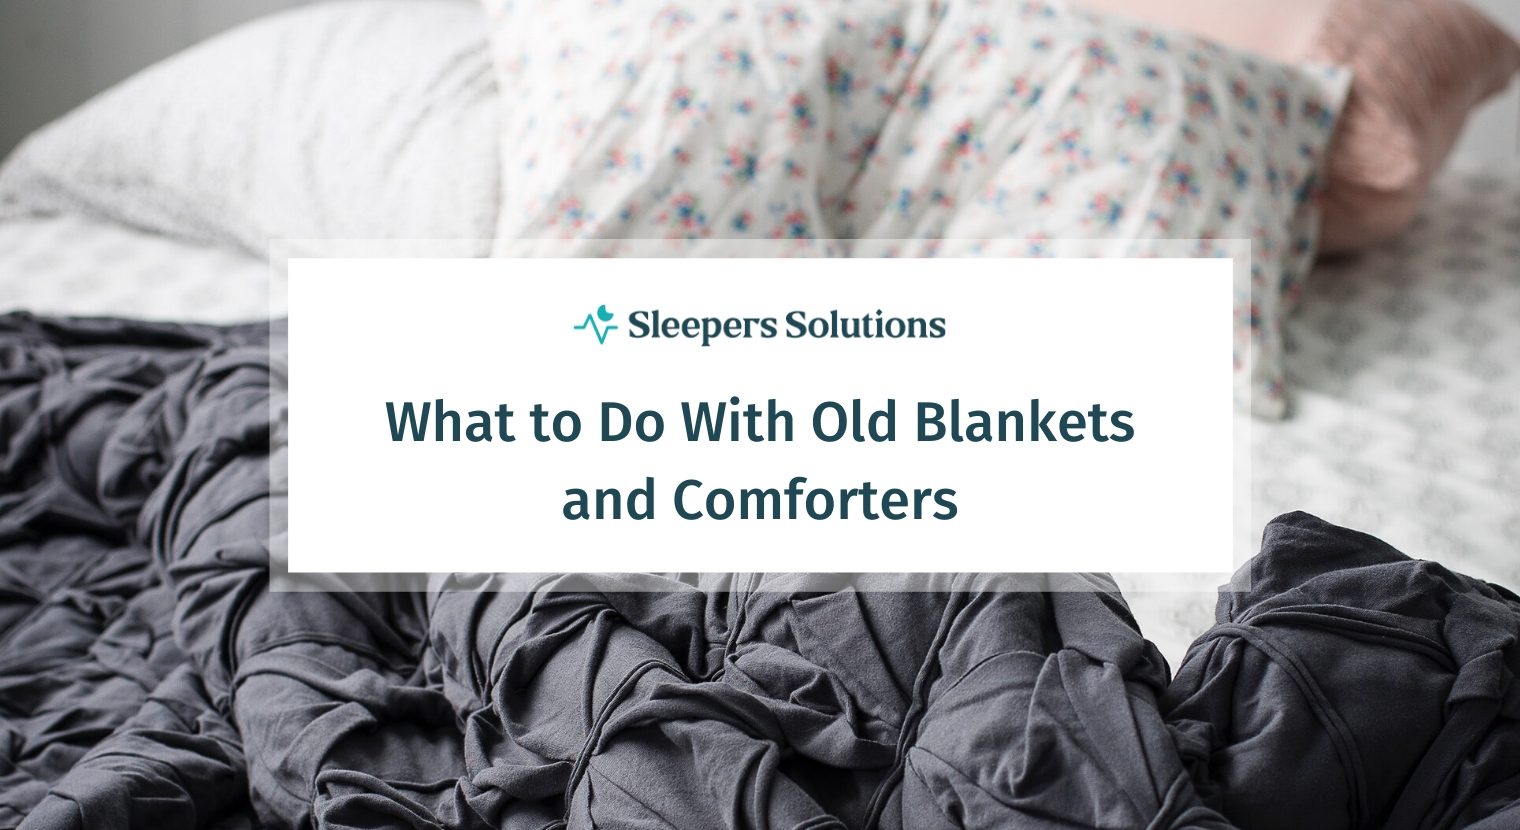 What to Do With Old Blankets and Comforters